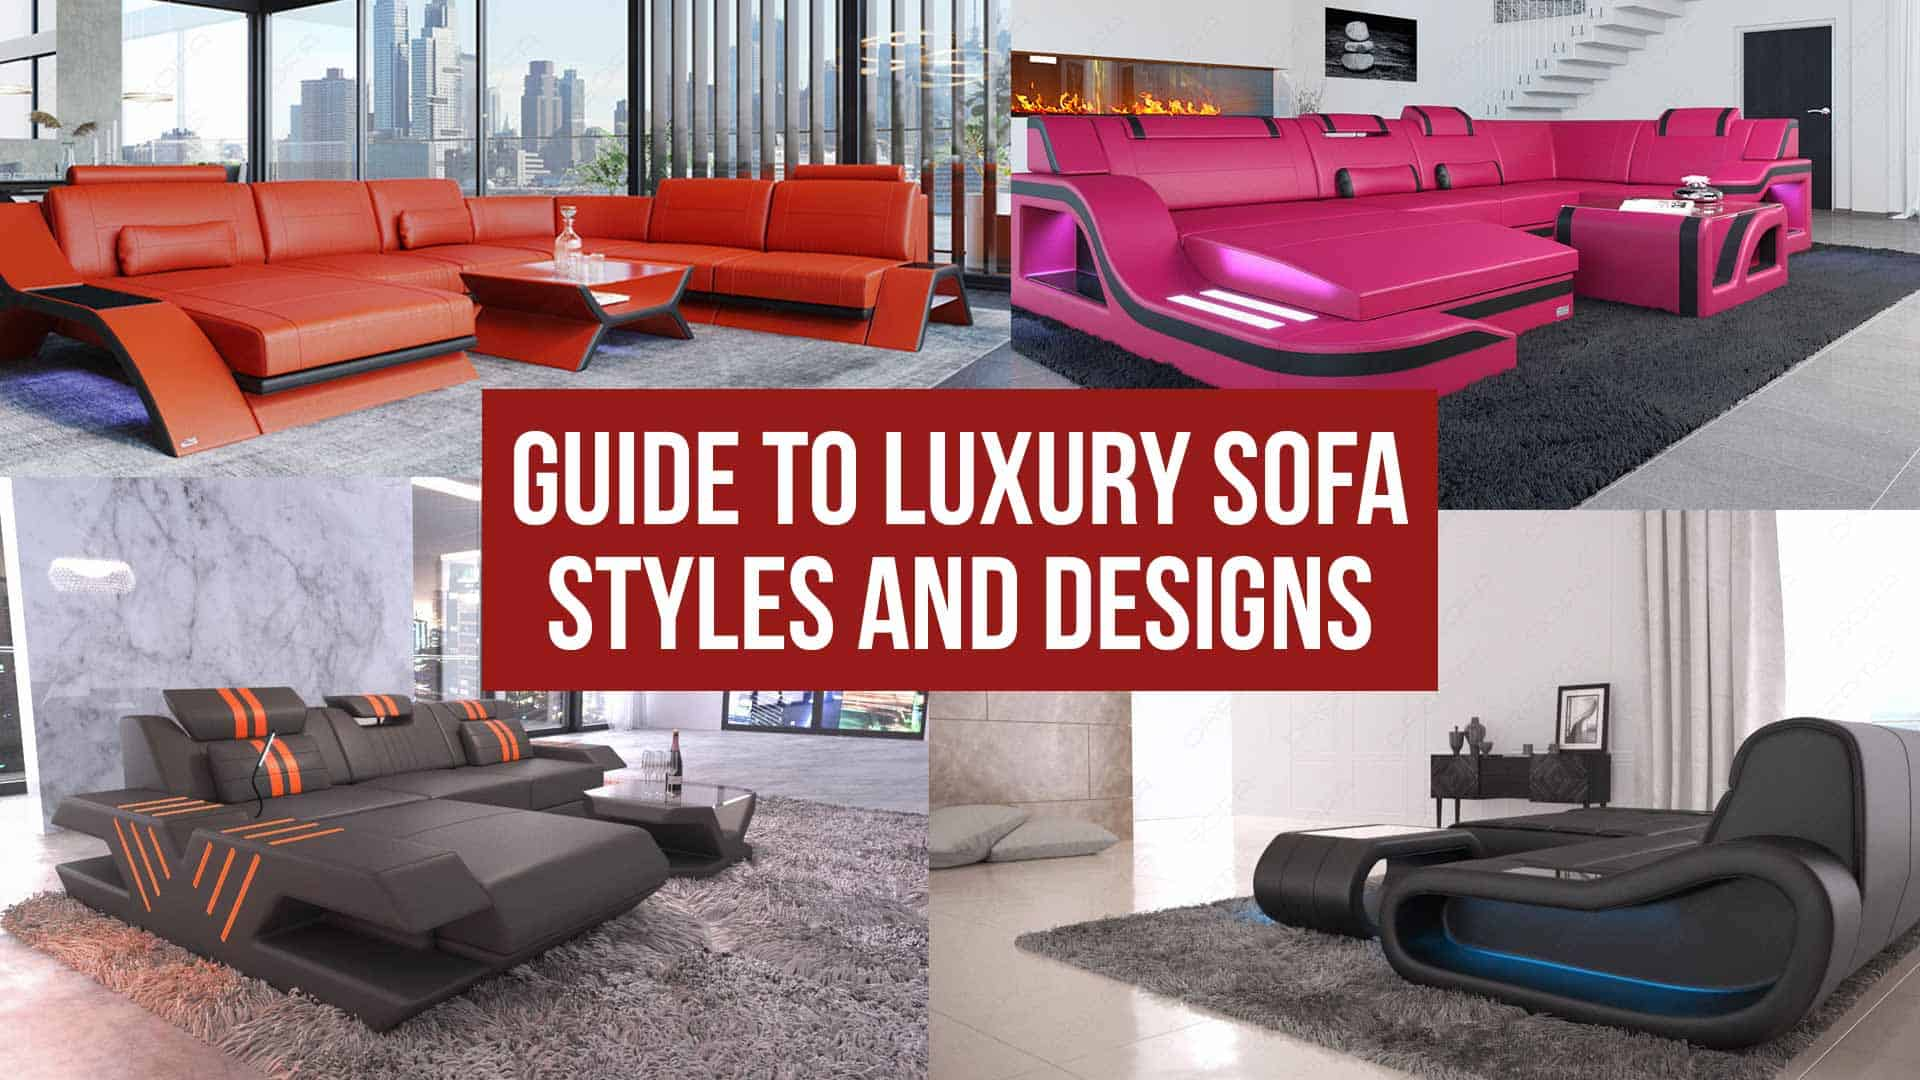 Guide to Luxury Sofa Styles and Designs